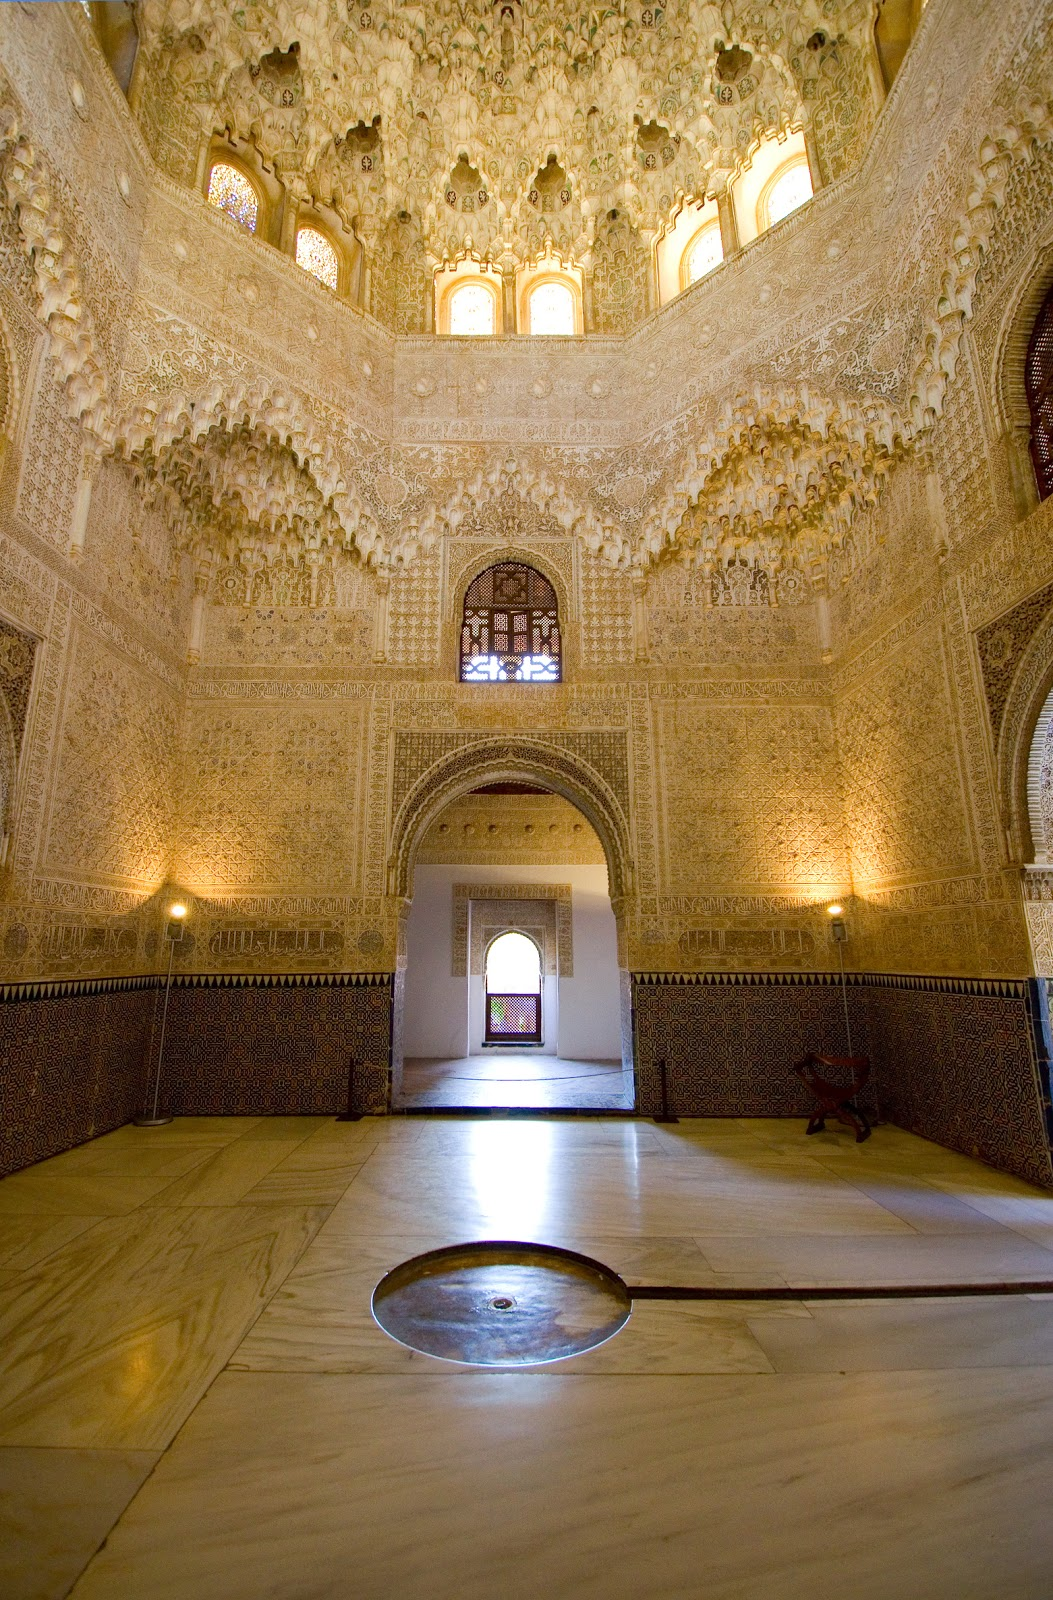 the alhambra palace essay To dive deeper, check out washington irving's tales of the alhambra, a collection of essays and stories that has in many ways shaped the modern perception of the palace 3 be patient and prepared.